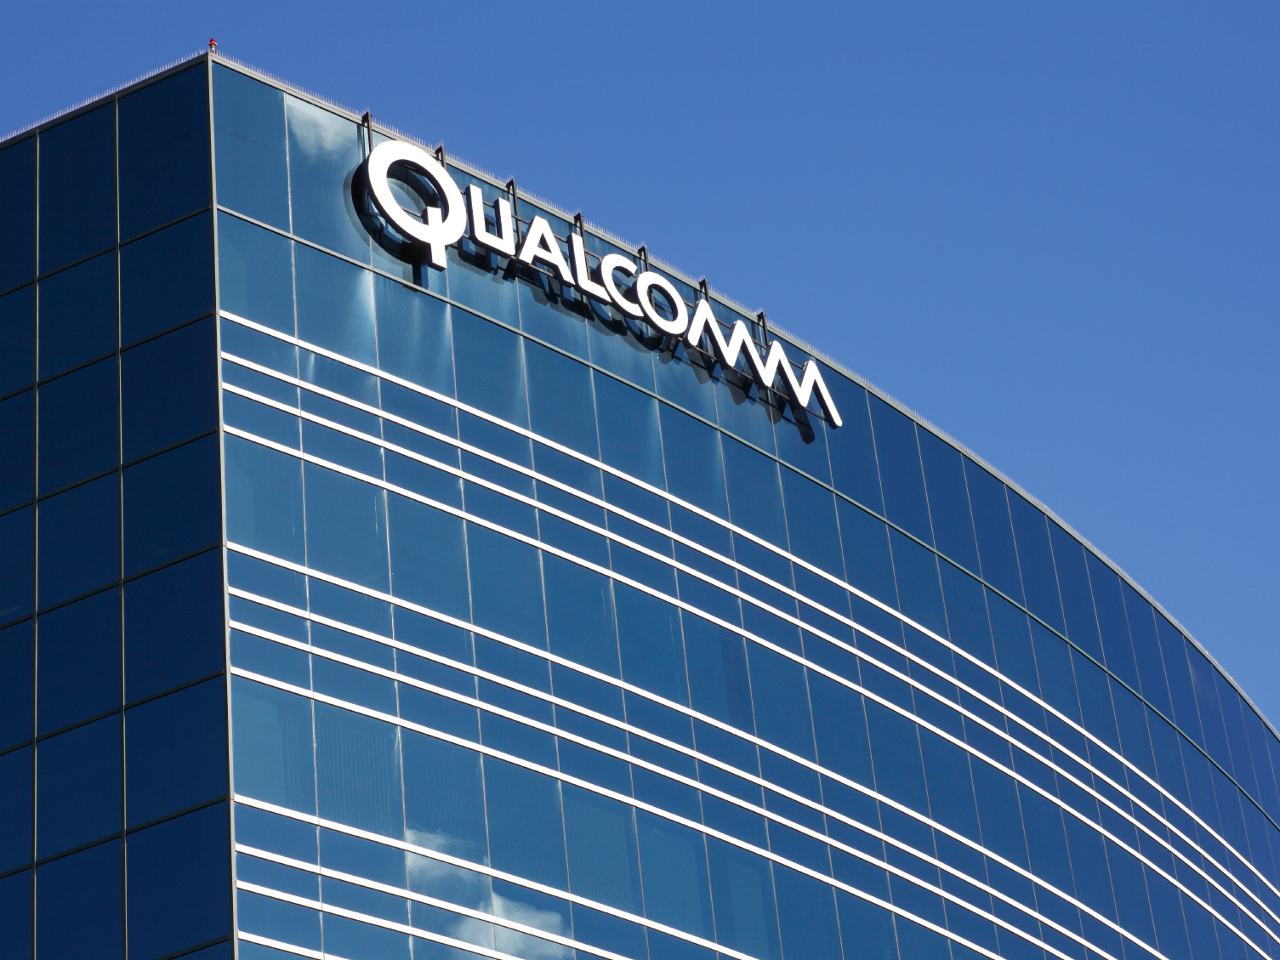 European Union court rules against Qualcomm on antitrust fine case